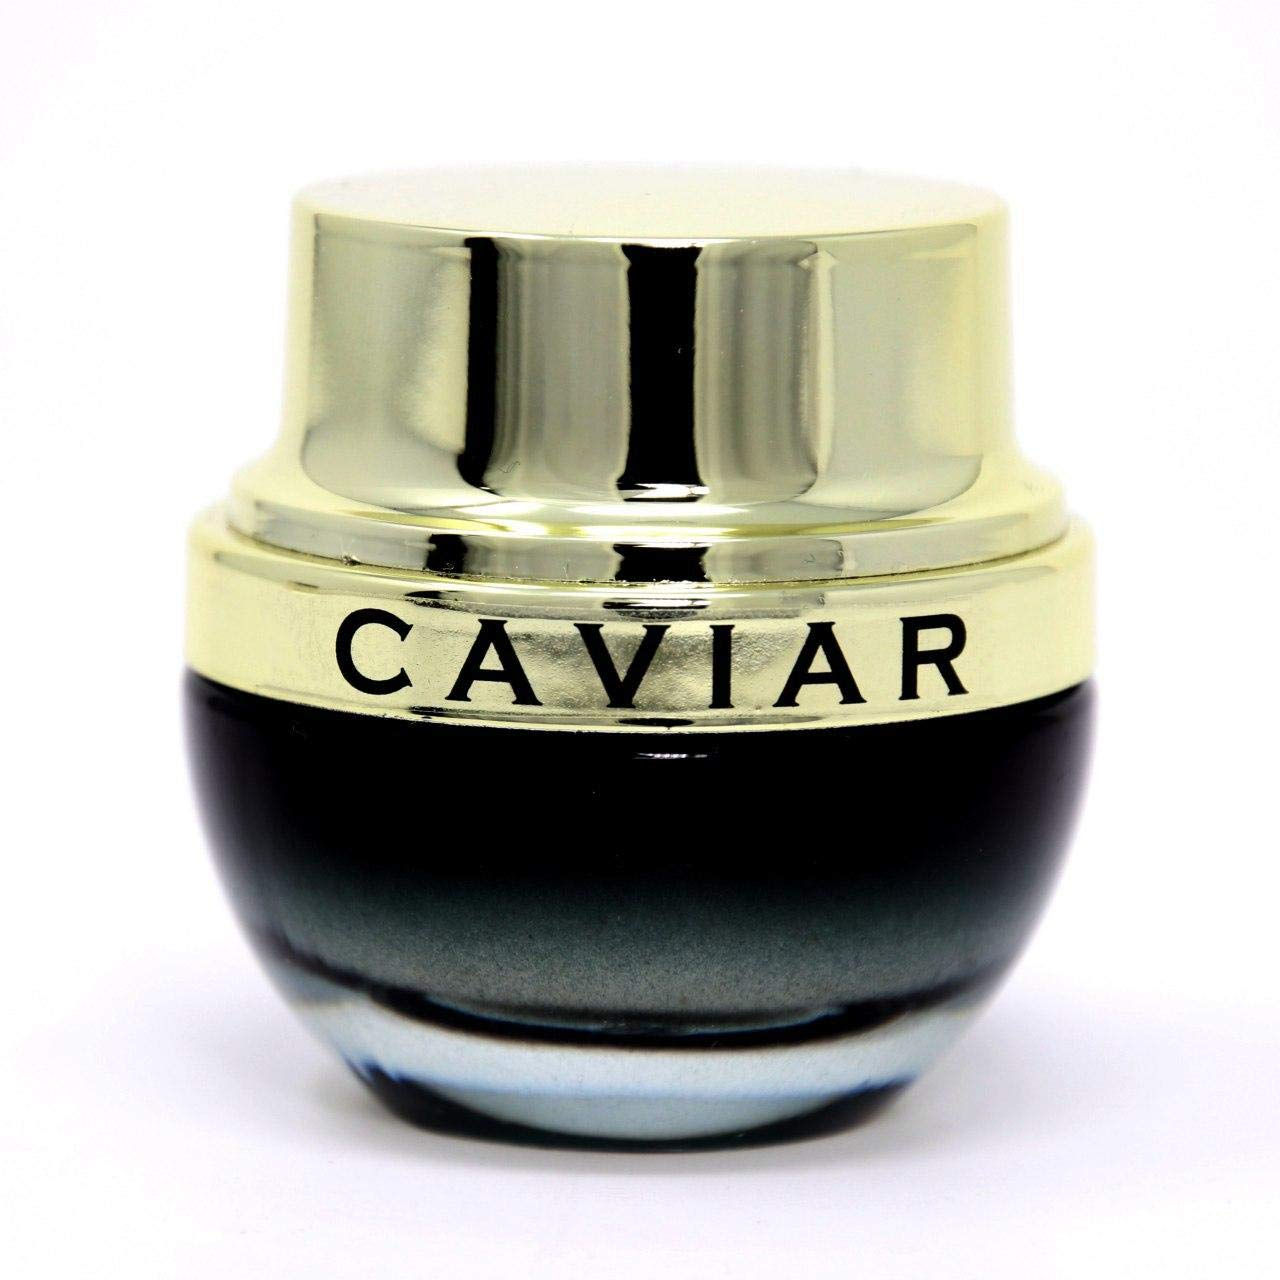 LuxDR Caviar Rx Cream for Luxury Handbags - Revive, Replenish and Protect by MISLUX